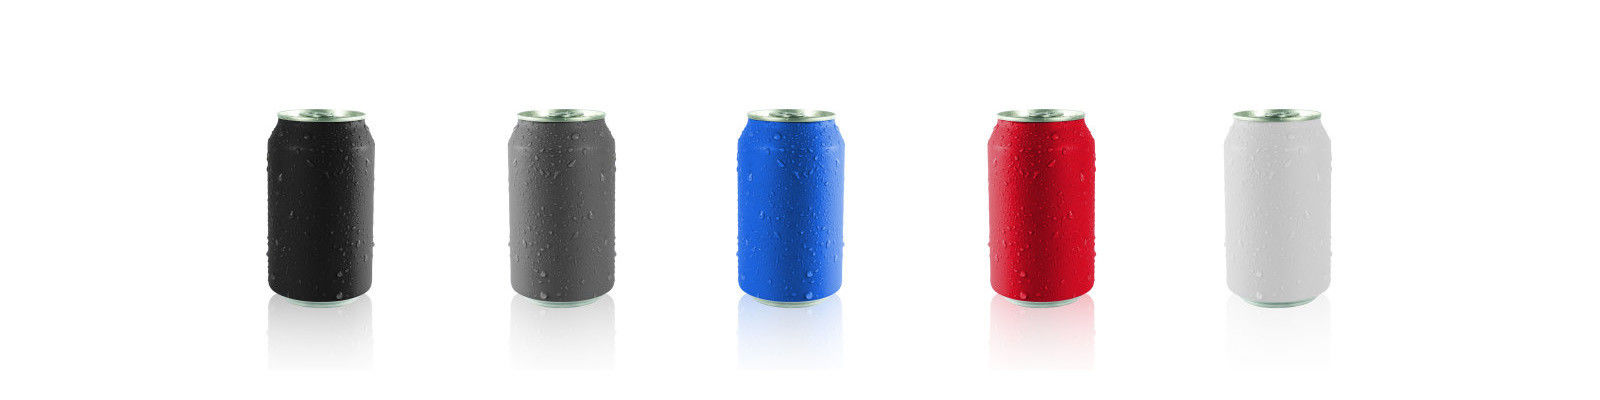 China best Aluminum Beverage Cans on sales